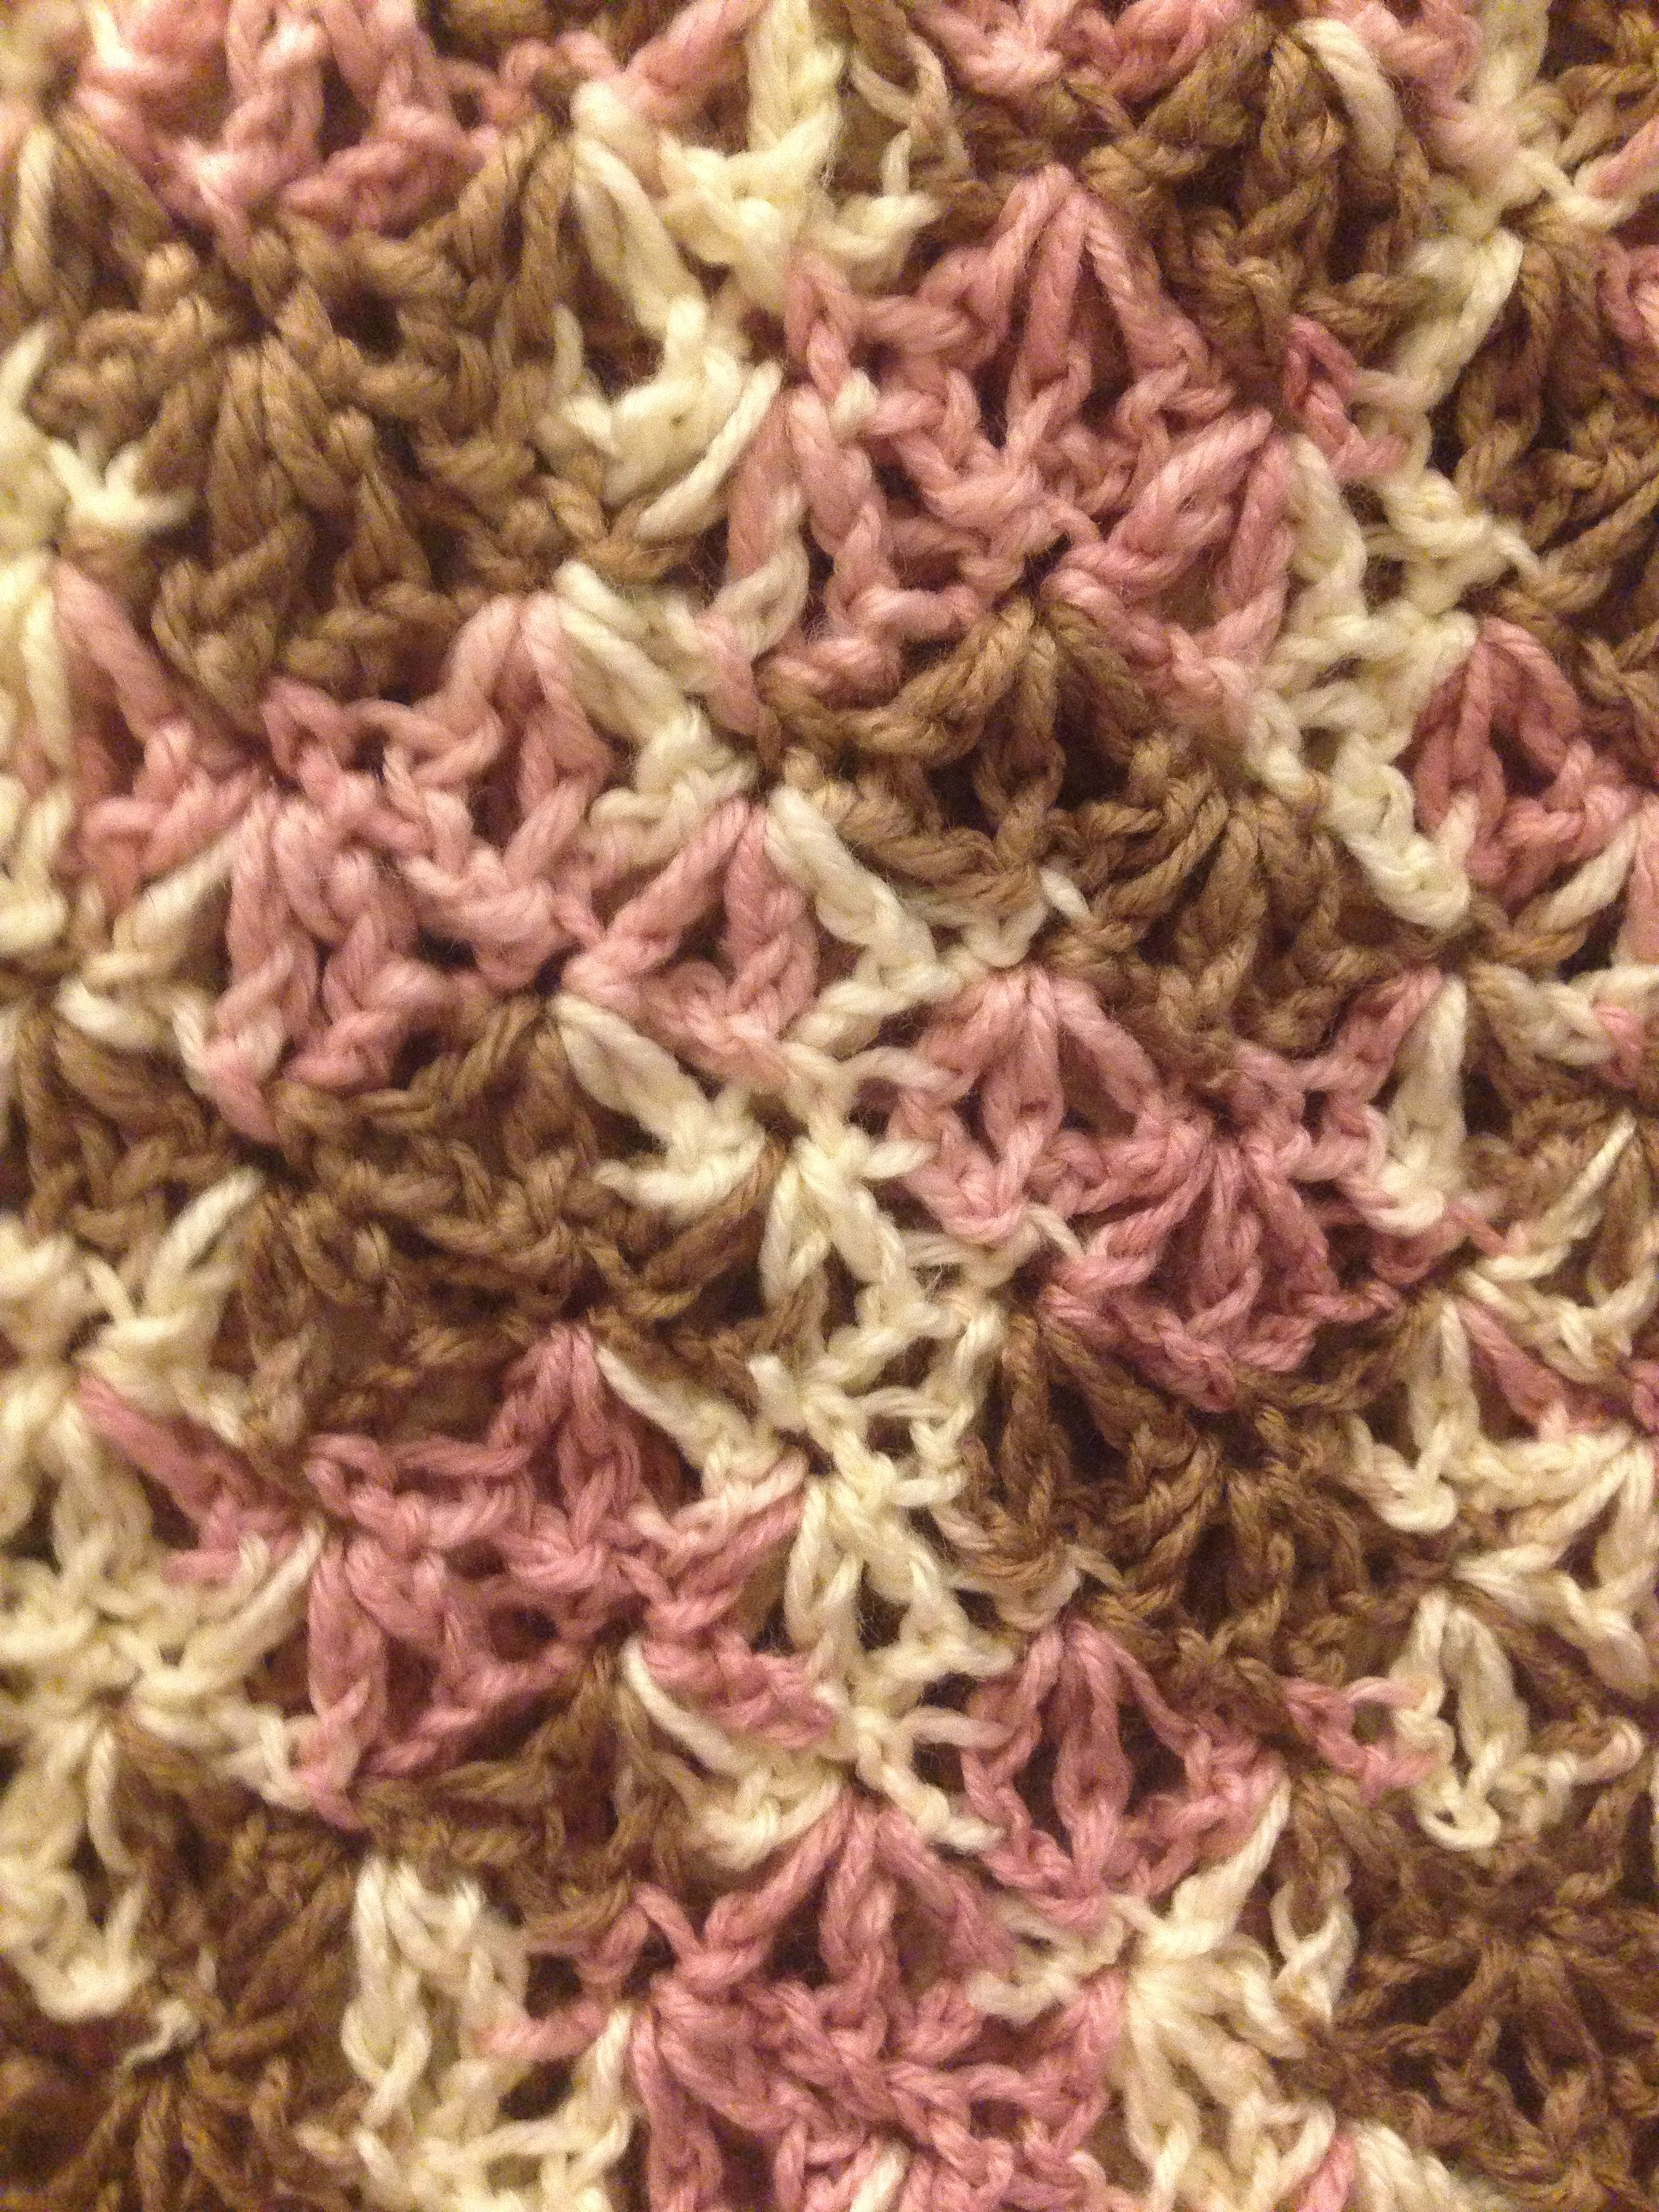 Shell stitch with variegated yarn Knitting and Crocheting Pintere ...